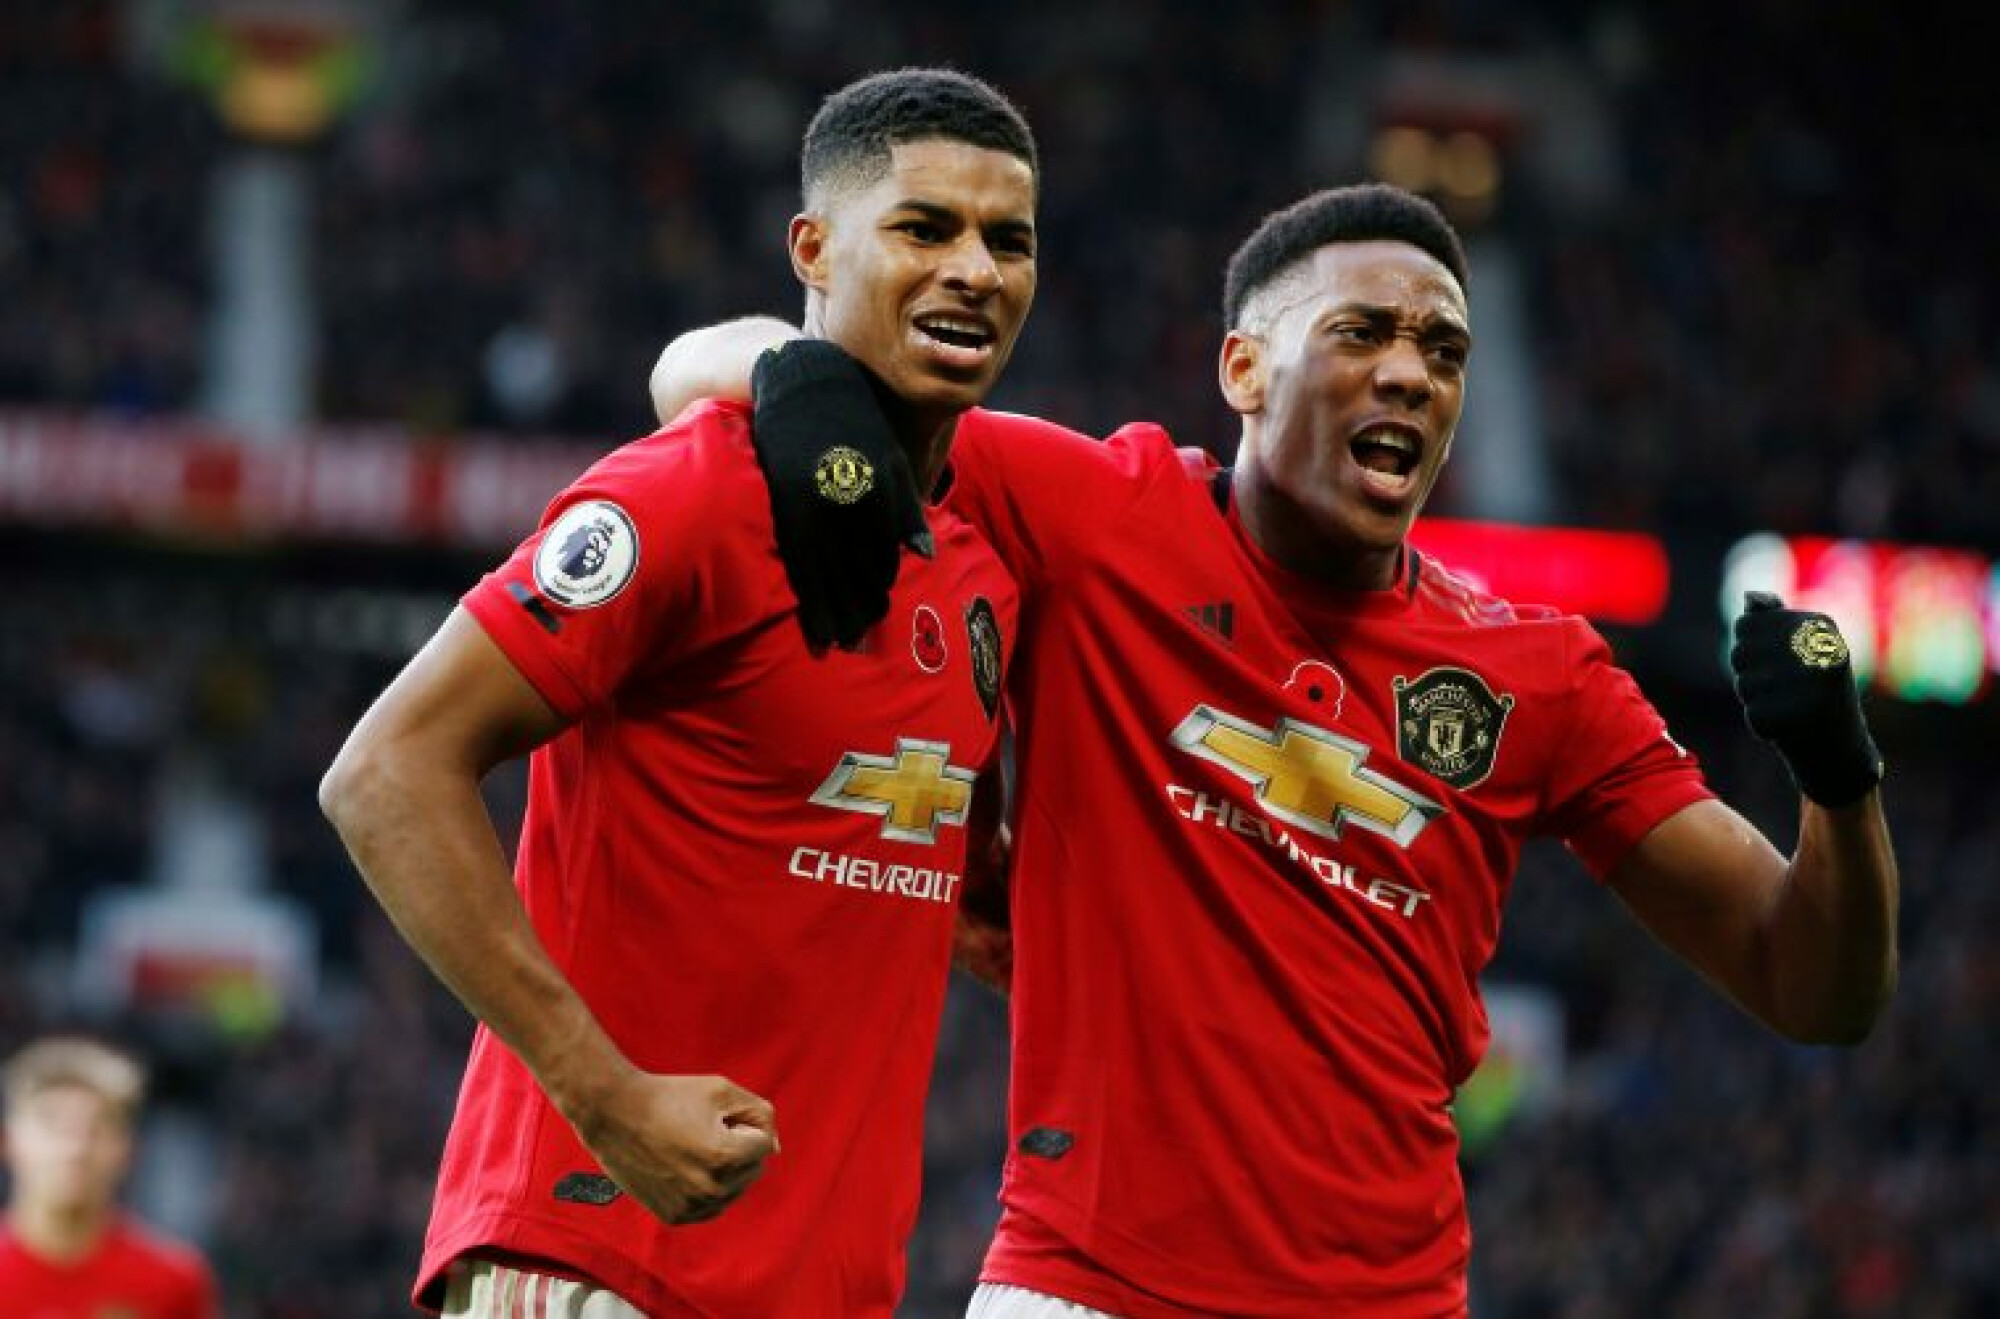 East Bengal vs Manchester United: Financial hurdle to the fixture